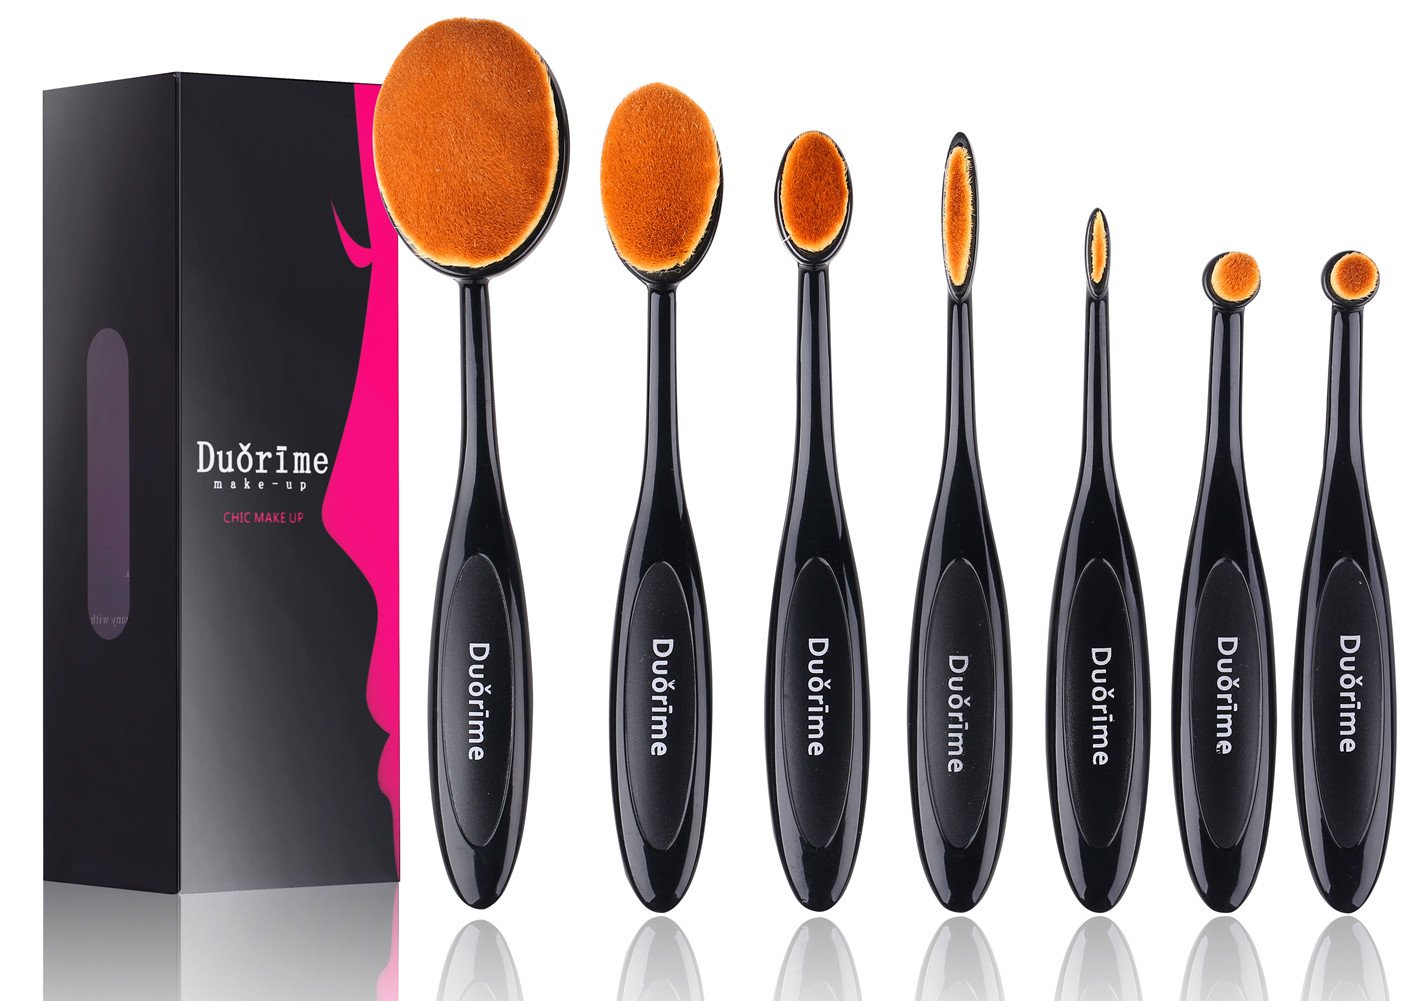 Duorime Makeup Brushes 7pieces Oval Toothbrush Makeup Brush Kit Professional Cream Contour Powder Concealer Foundation Eyeliner Cosmetics Tool